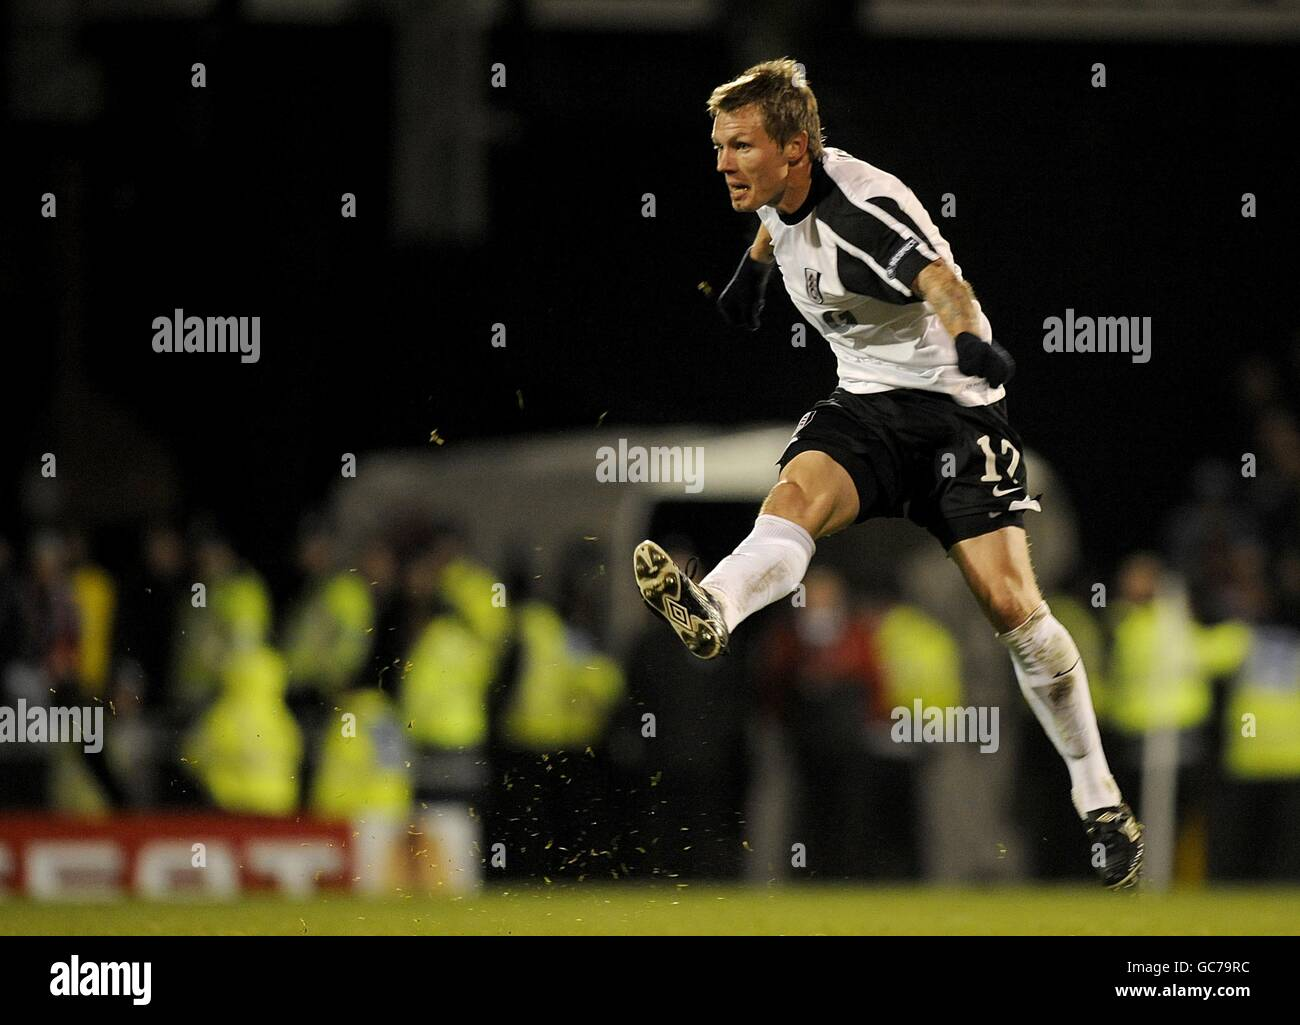 Soccer - UEFA Europa League - Group E - Fulham v CSKA Sofia - Craven Cottage - Stock Image